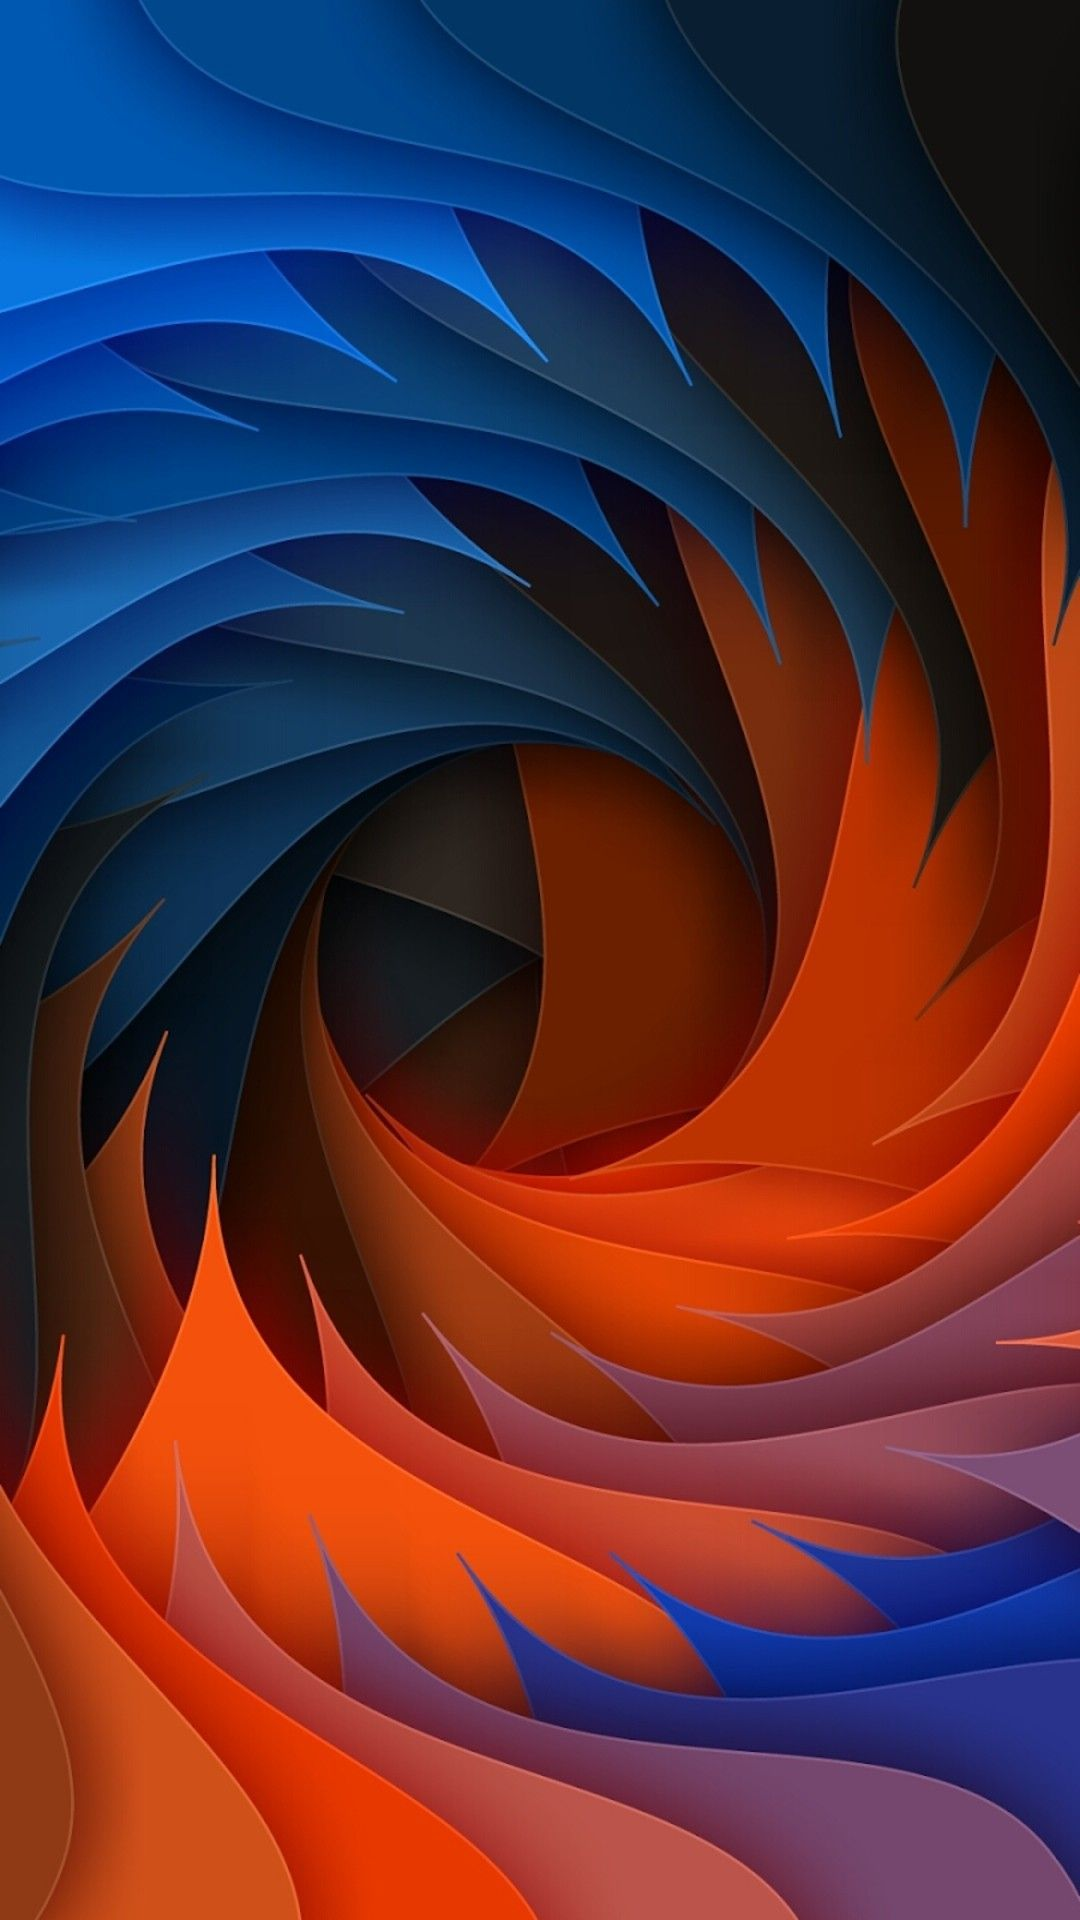 Abstract Wallpaper Ios > Flip Wallpapers > Download Free